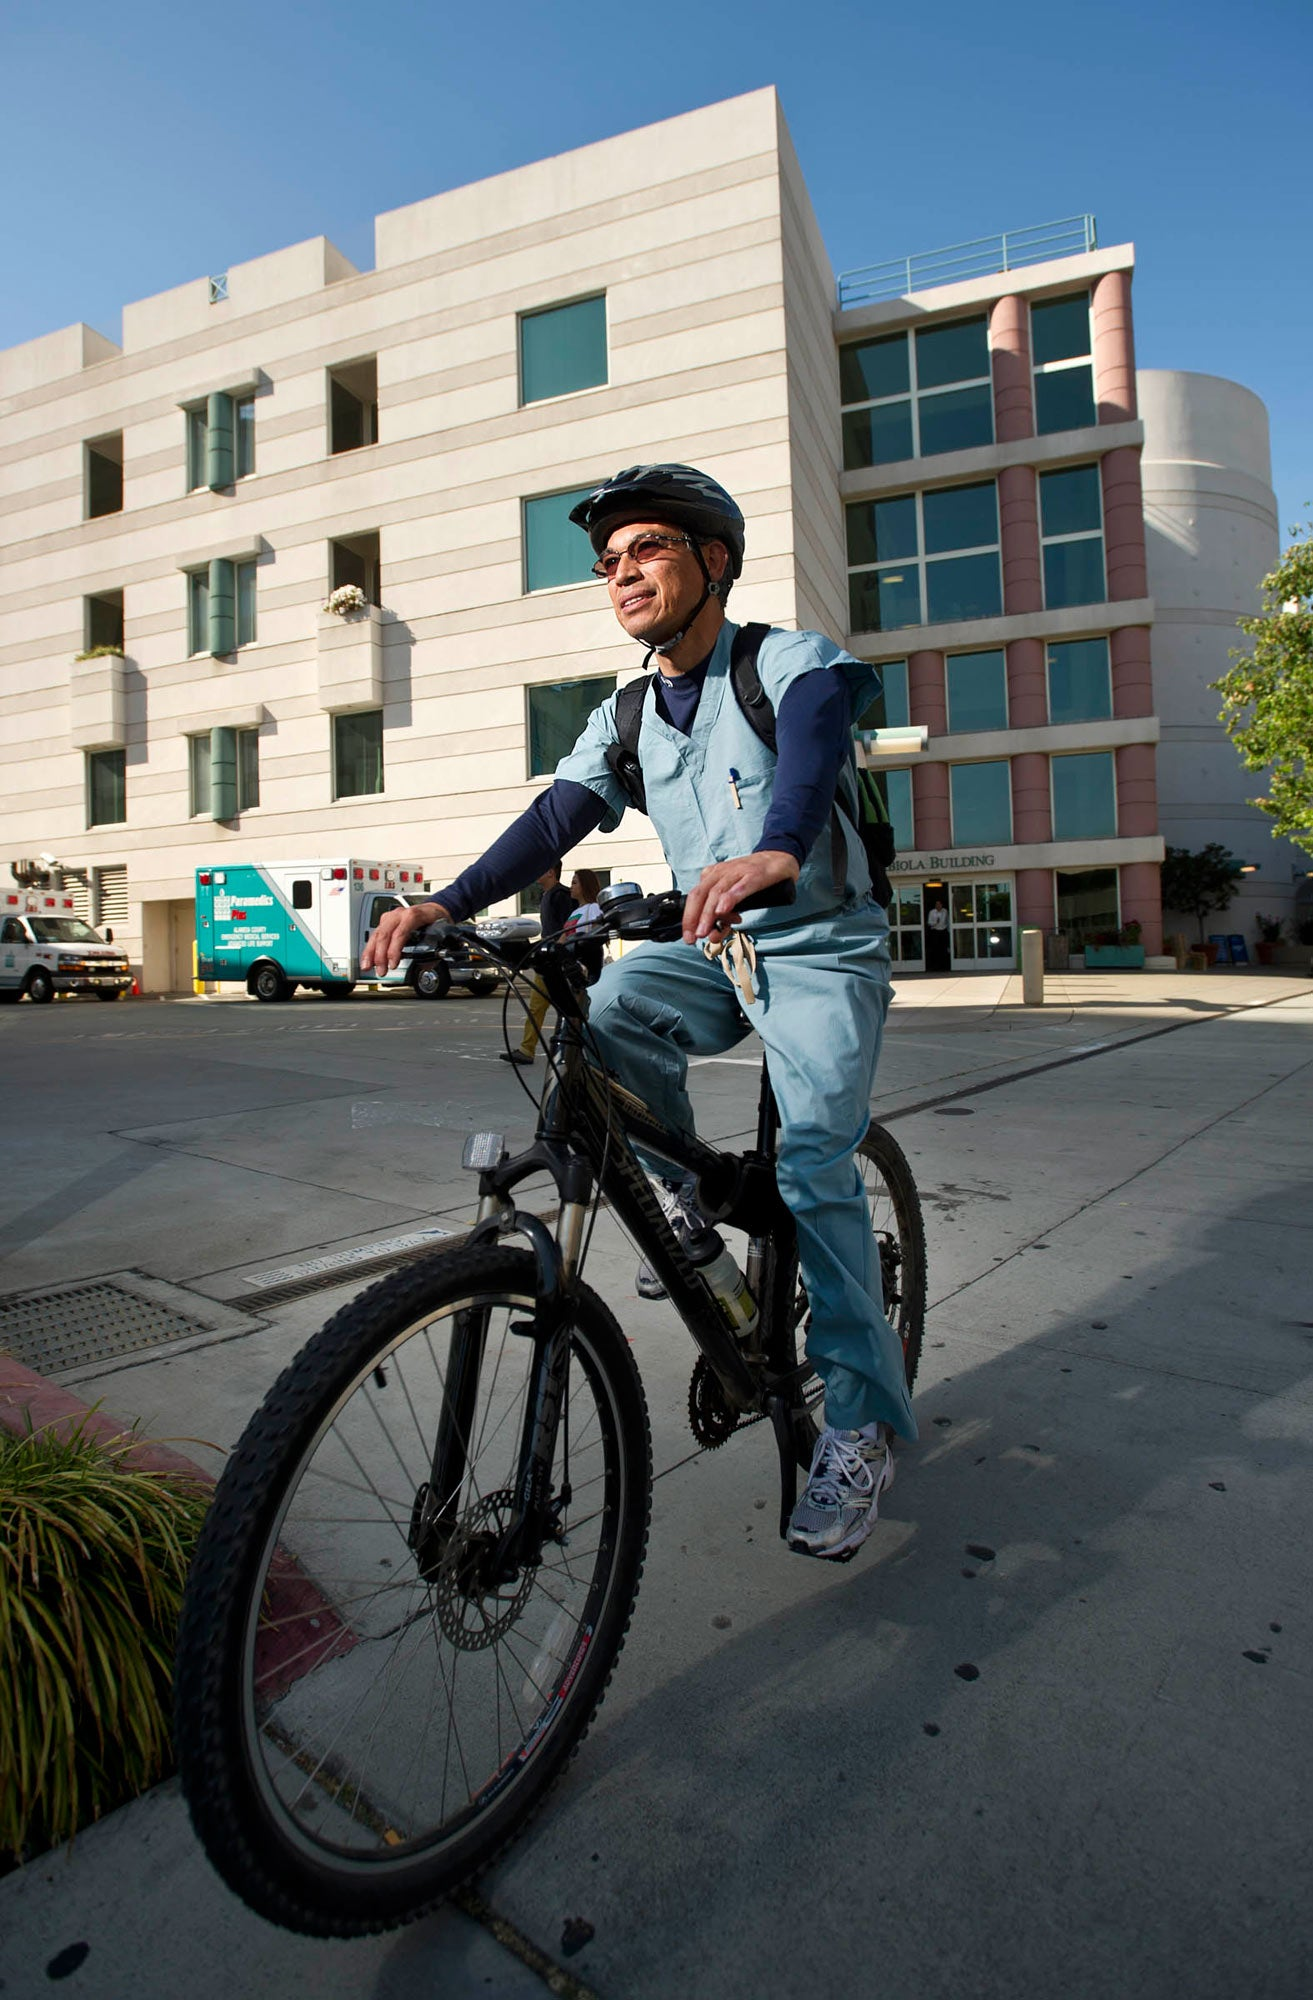 Saul Cristales, a worker in Kaiser Oakland's orthopedics department, rides home after a shift on BTWD. Cristales bikes round-trip from his El Cerrito home daily.